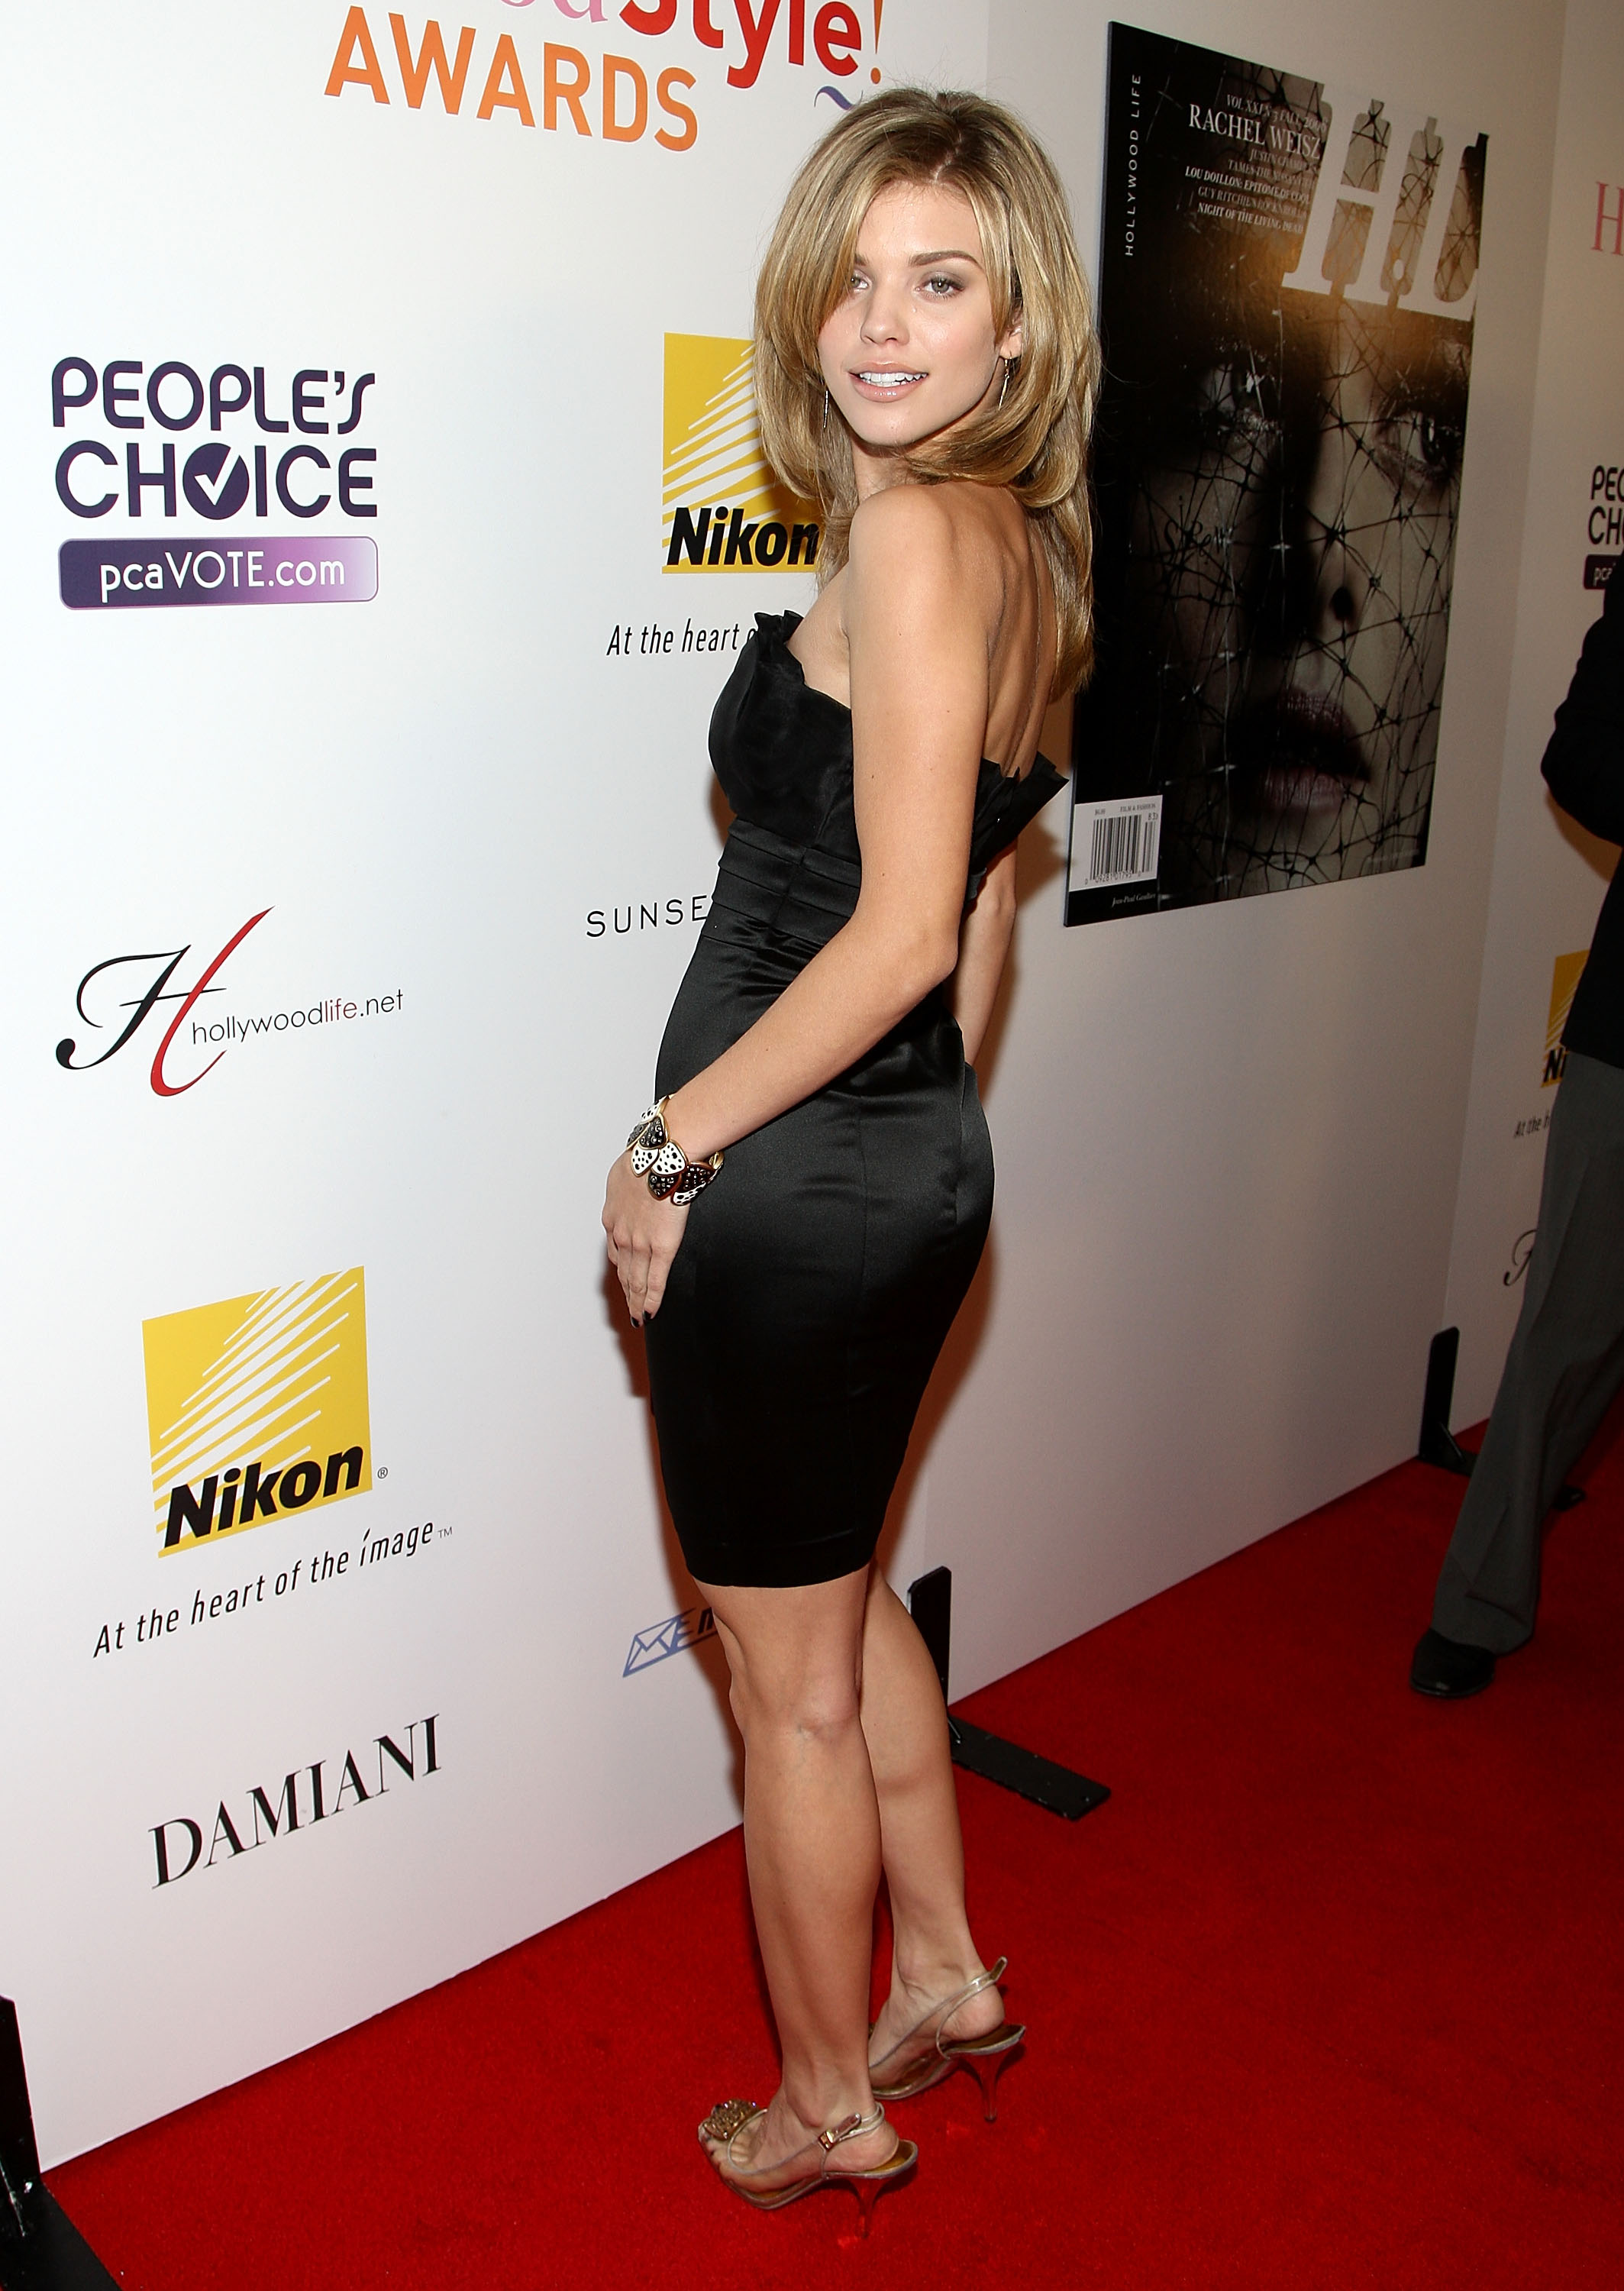 96951_Celebutopia-AnnaLynne_McCord-Hollywood_Life90s_5th_annual_Hollywood_Style_Awards-09_122_357lo.jpg